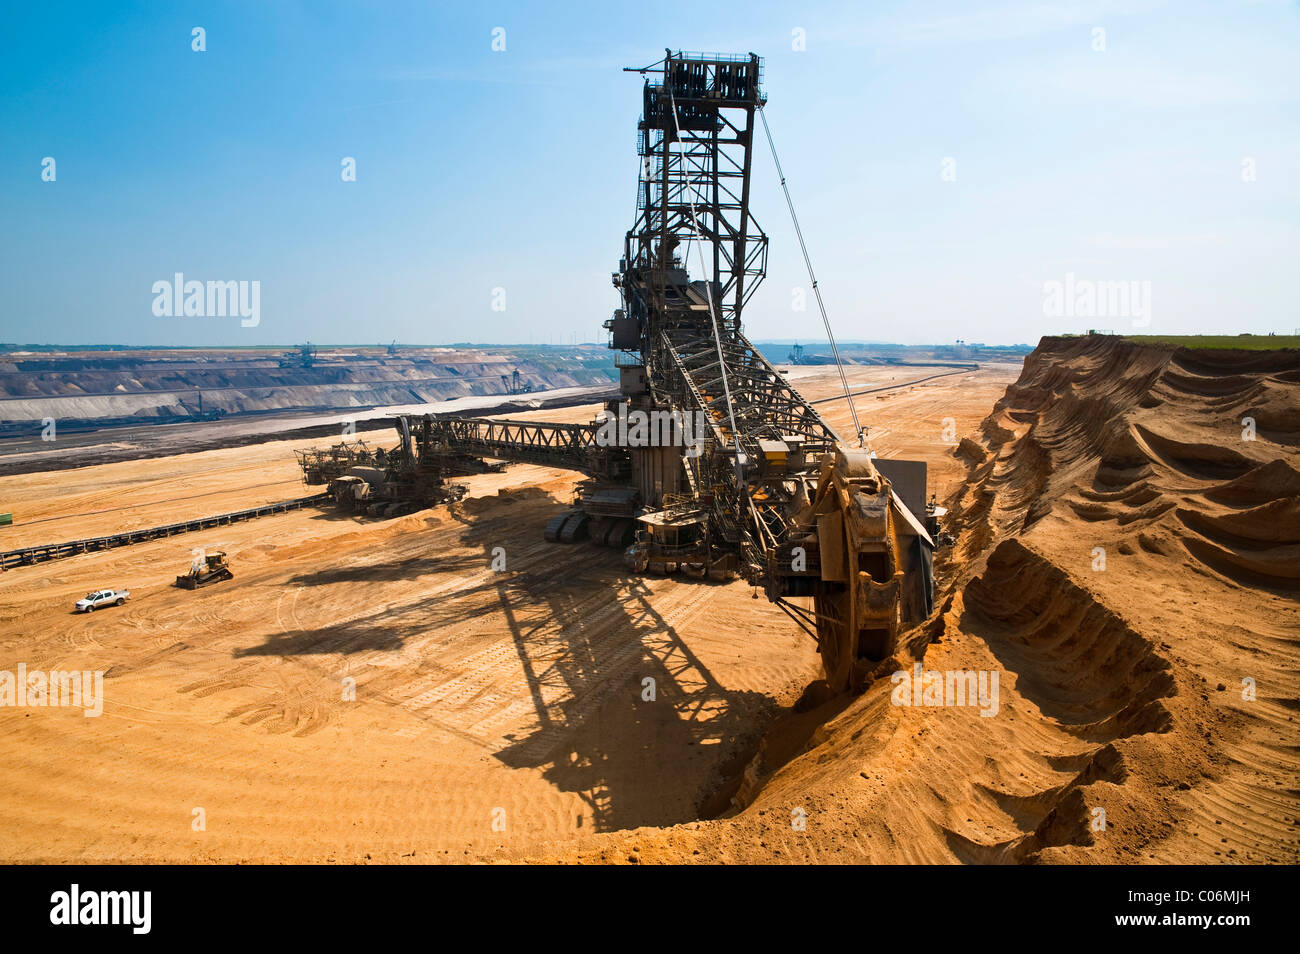 Bucket-wheel excavator in an open pit, Grevenbroich, North Rhine-Westphalia, Germany, Europe Stock Photo